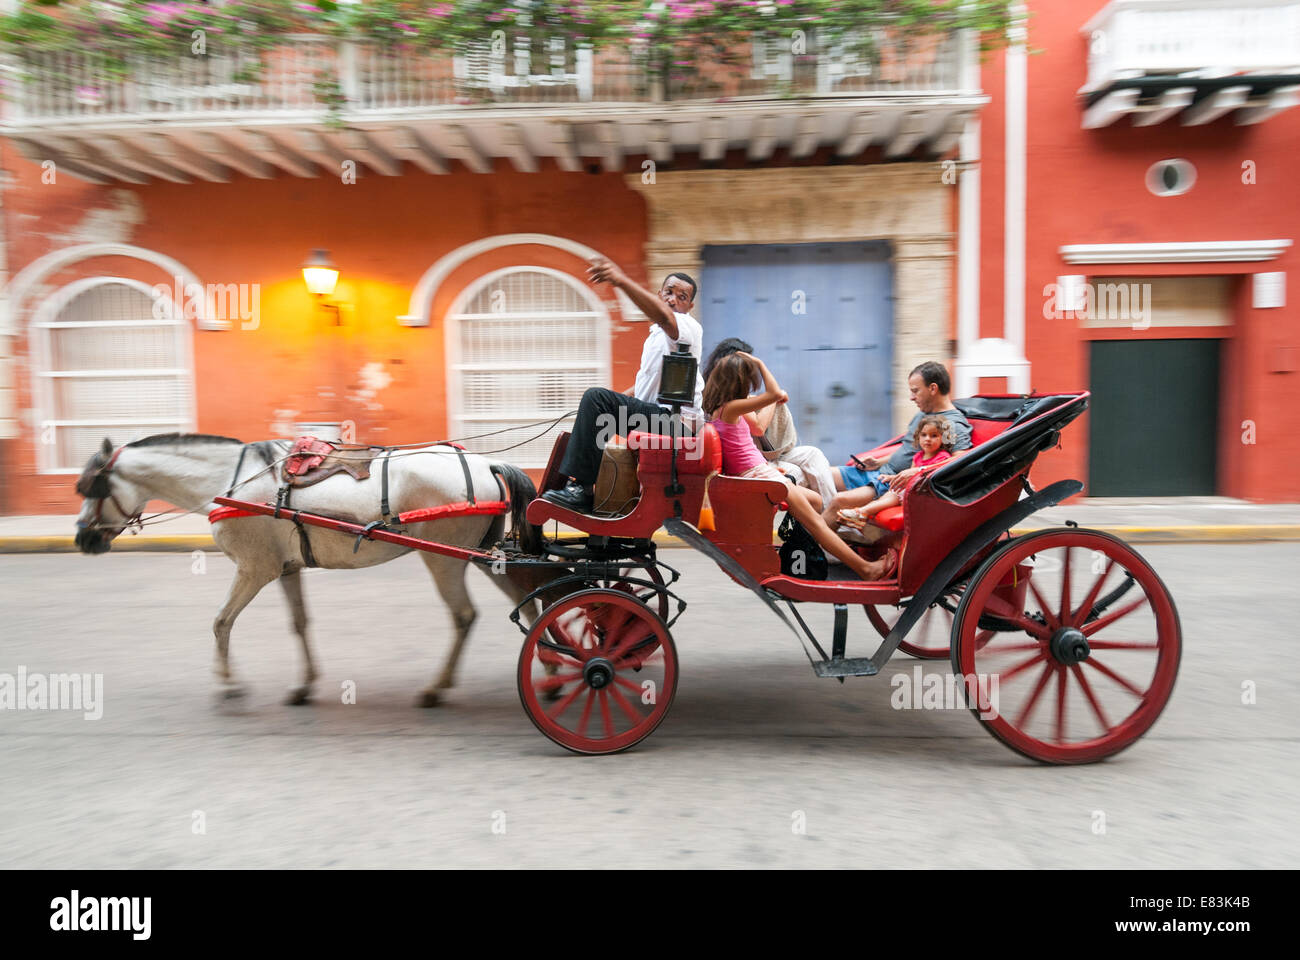 Paseo en coche horse drawn carriage tour through the streets of the old town, Cartagena de Indias, Colombia - Stock Image